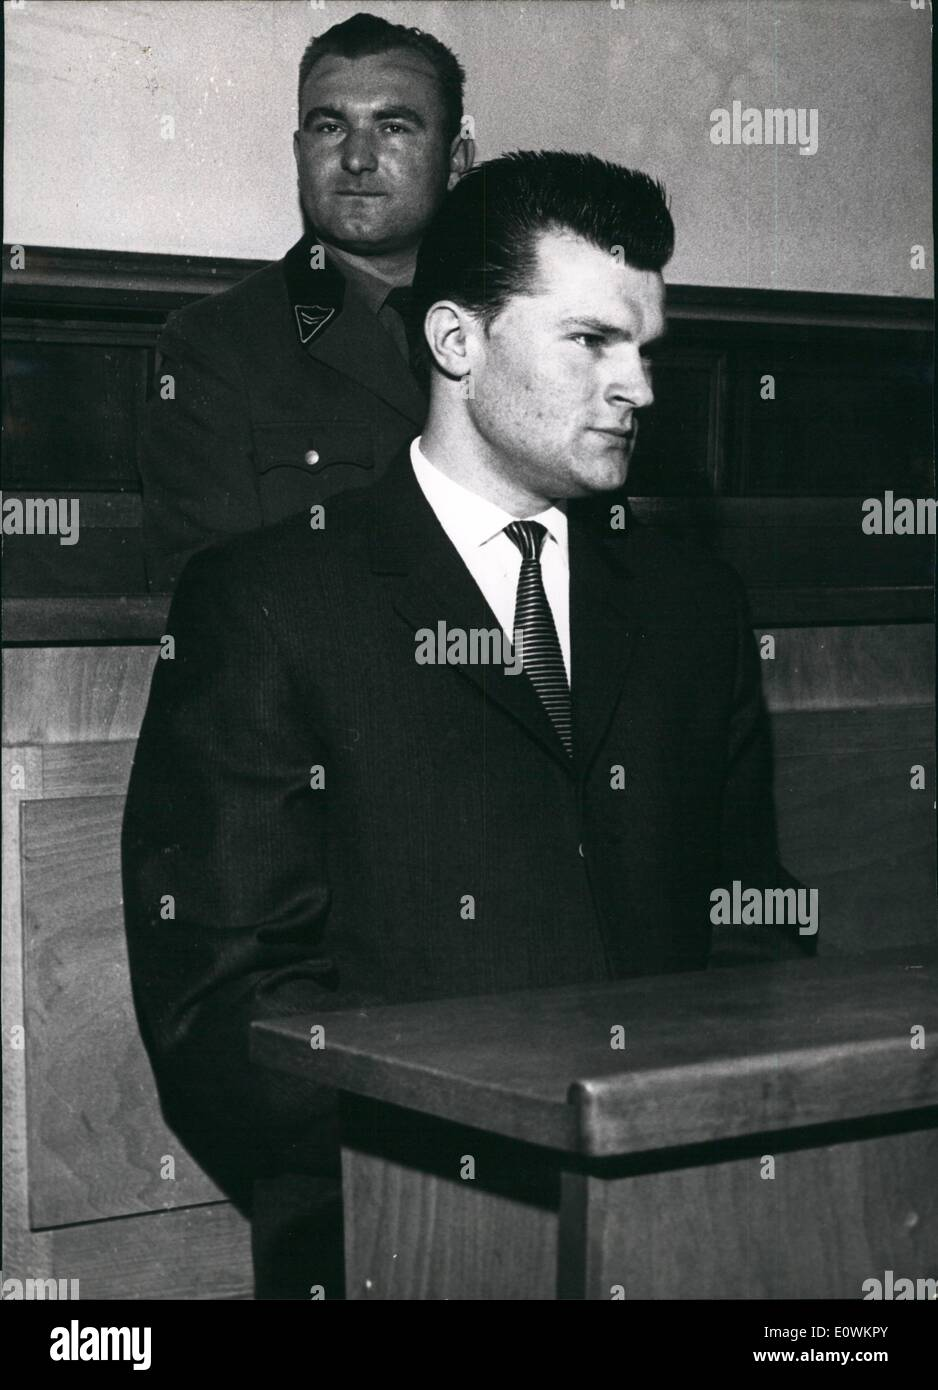 Jul. 07, 1963 - Murder trial against former East German soldier . Trial before the Grand Jury in Stuttgart was opened today against Fritz Richard Hankee (Fritz Richard Hankee), 22, a former soldier of the East German ''People's army'' who, before emigrating to Western Germany himself is accused to have shot and killed an unknown refugee who tried to cross the iron curtian on June 5th 1962. Prior to the trial Hanke has confessed to have shot on the refugee - Stock Image